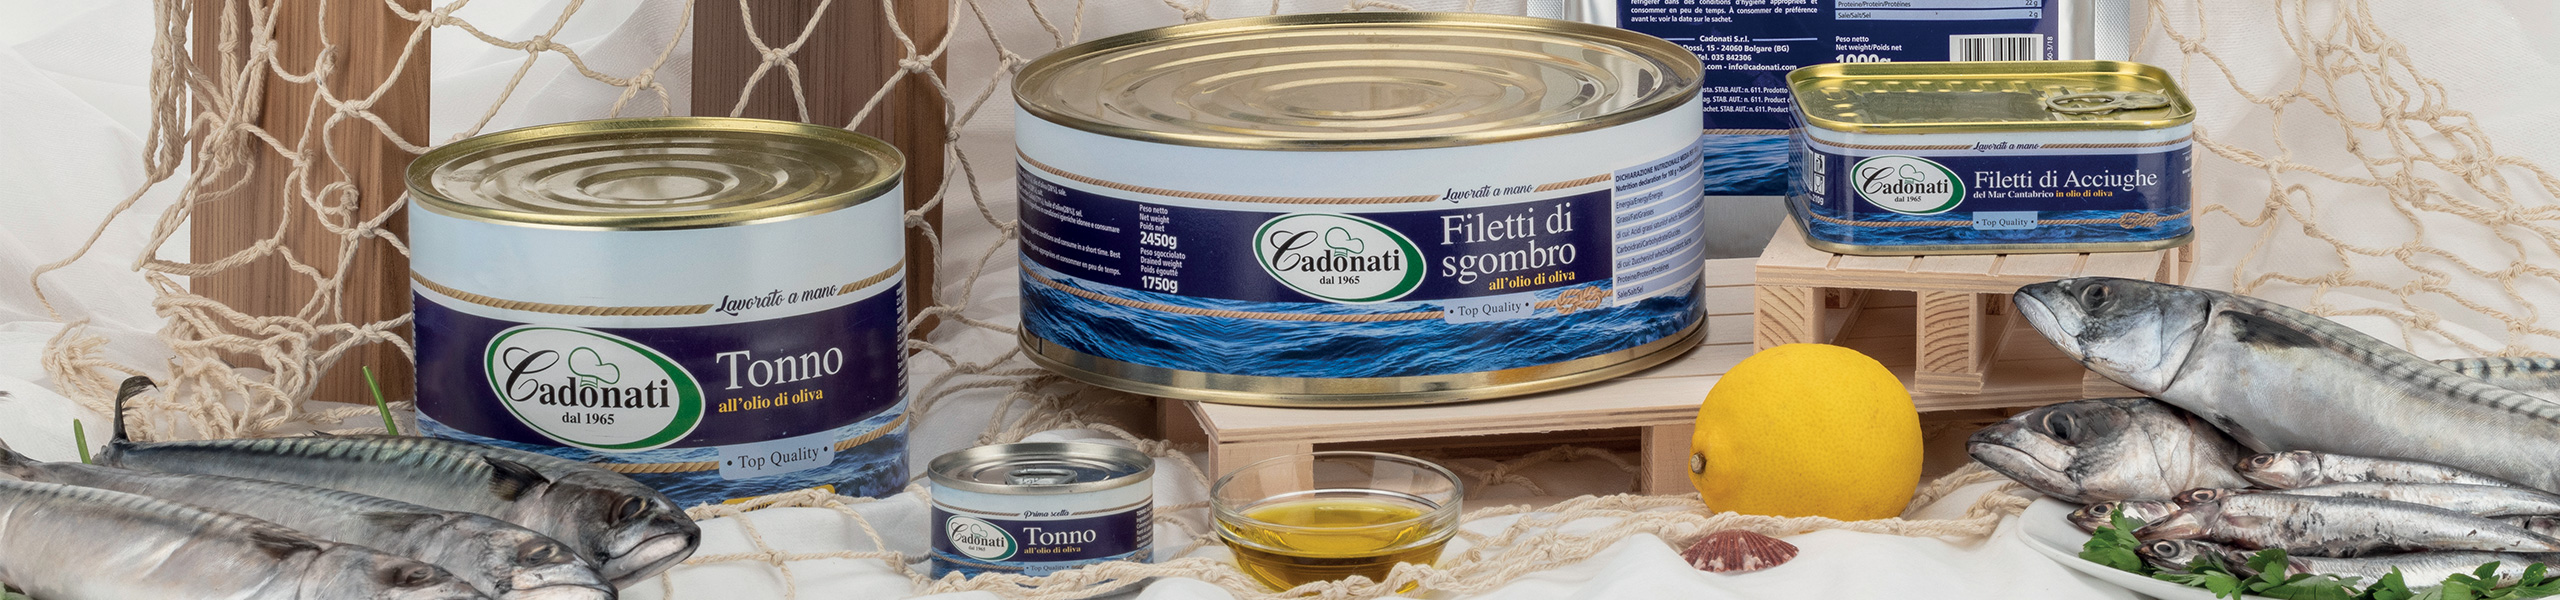 Filetti di sgombro all'olio d'oliva